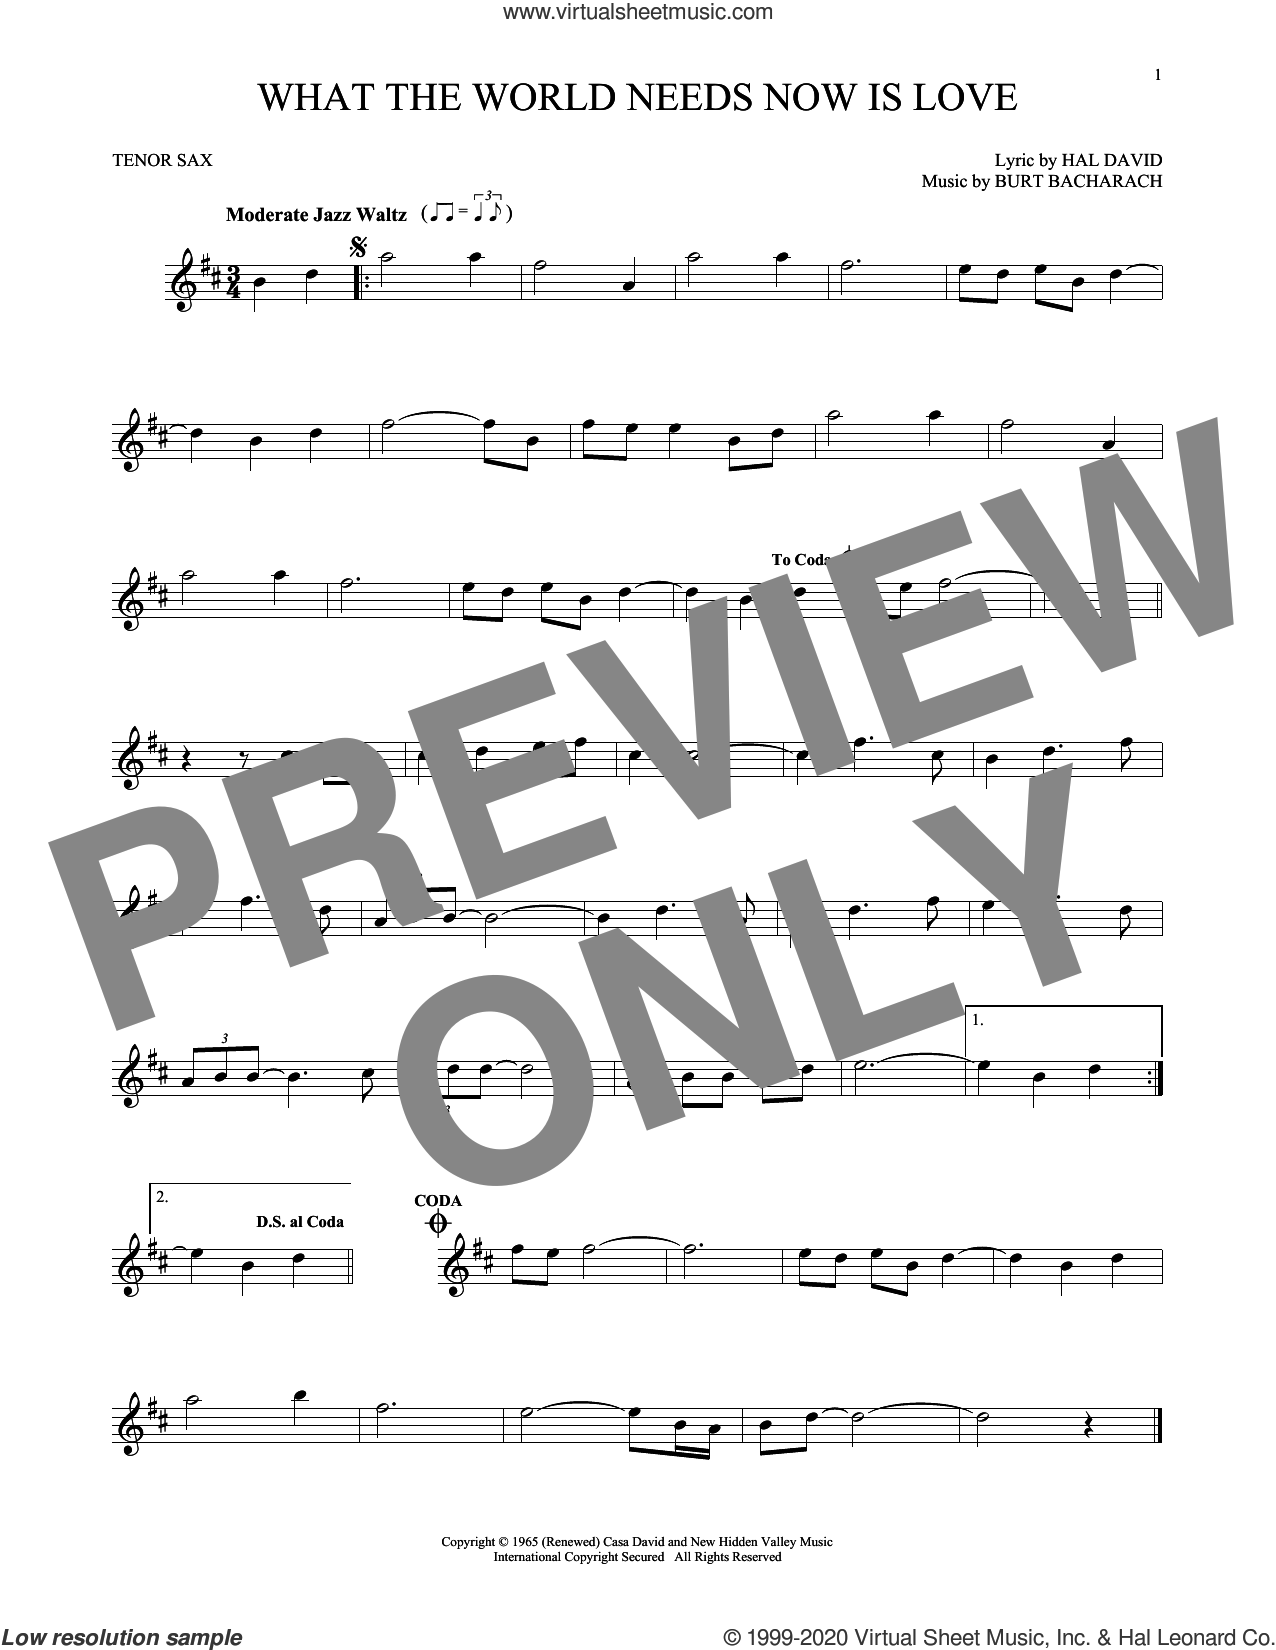 What The World Needs Now Is Love sheet music for tenor saxophone solo by Bacharach & David, Jackie DeShannon, Burt Bacharach and Hal David, intermediate skill level